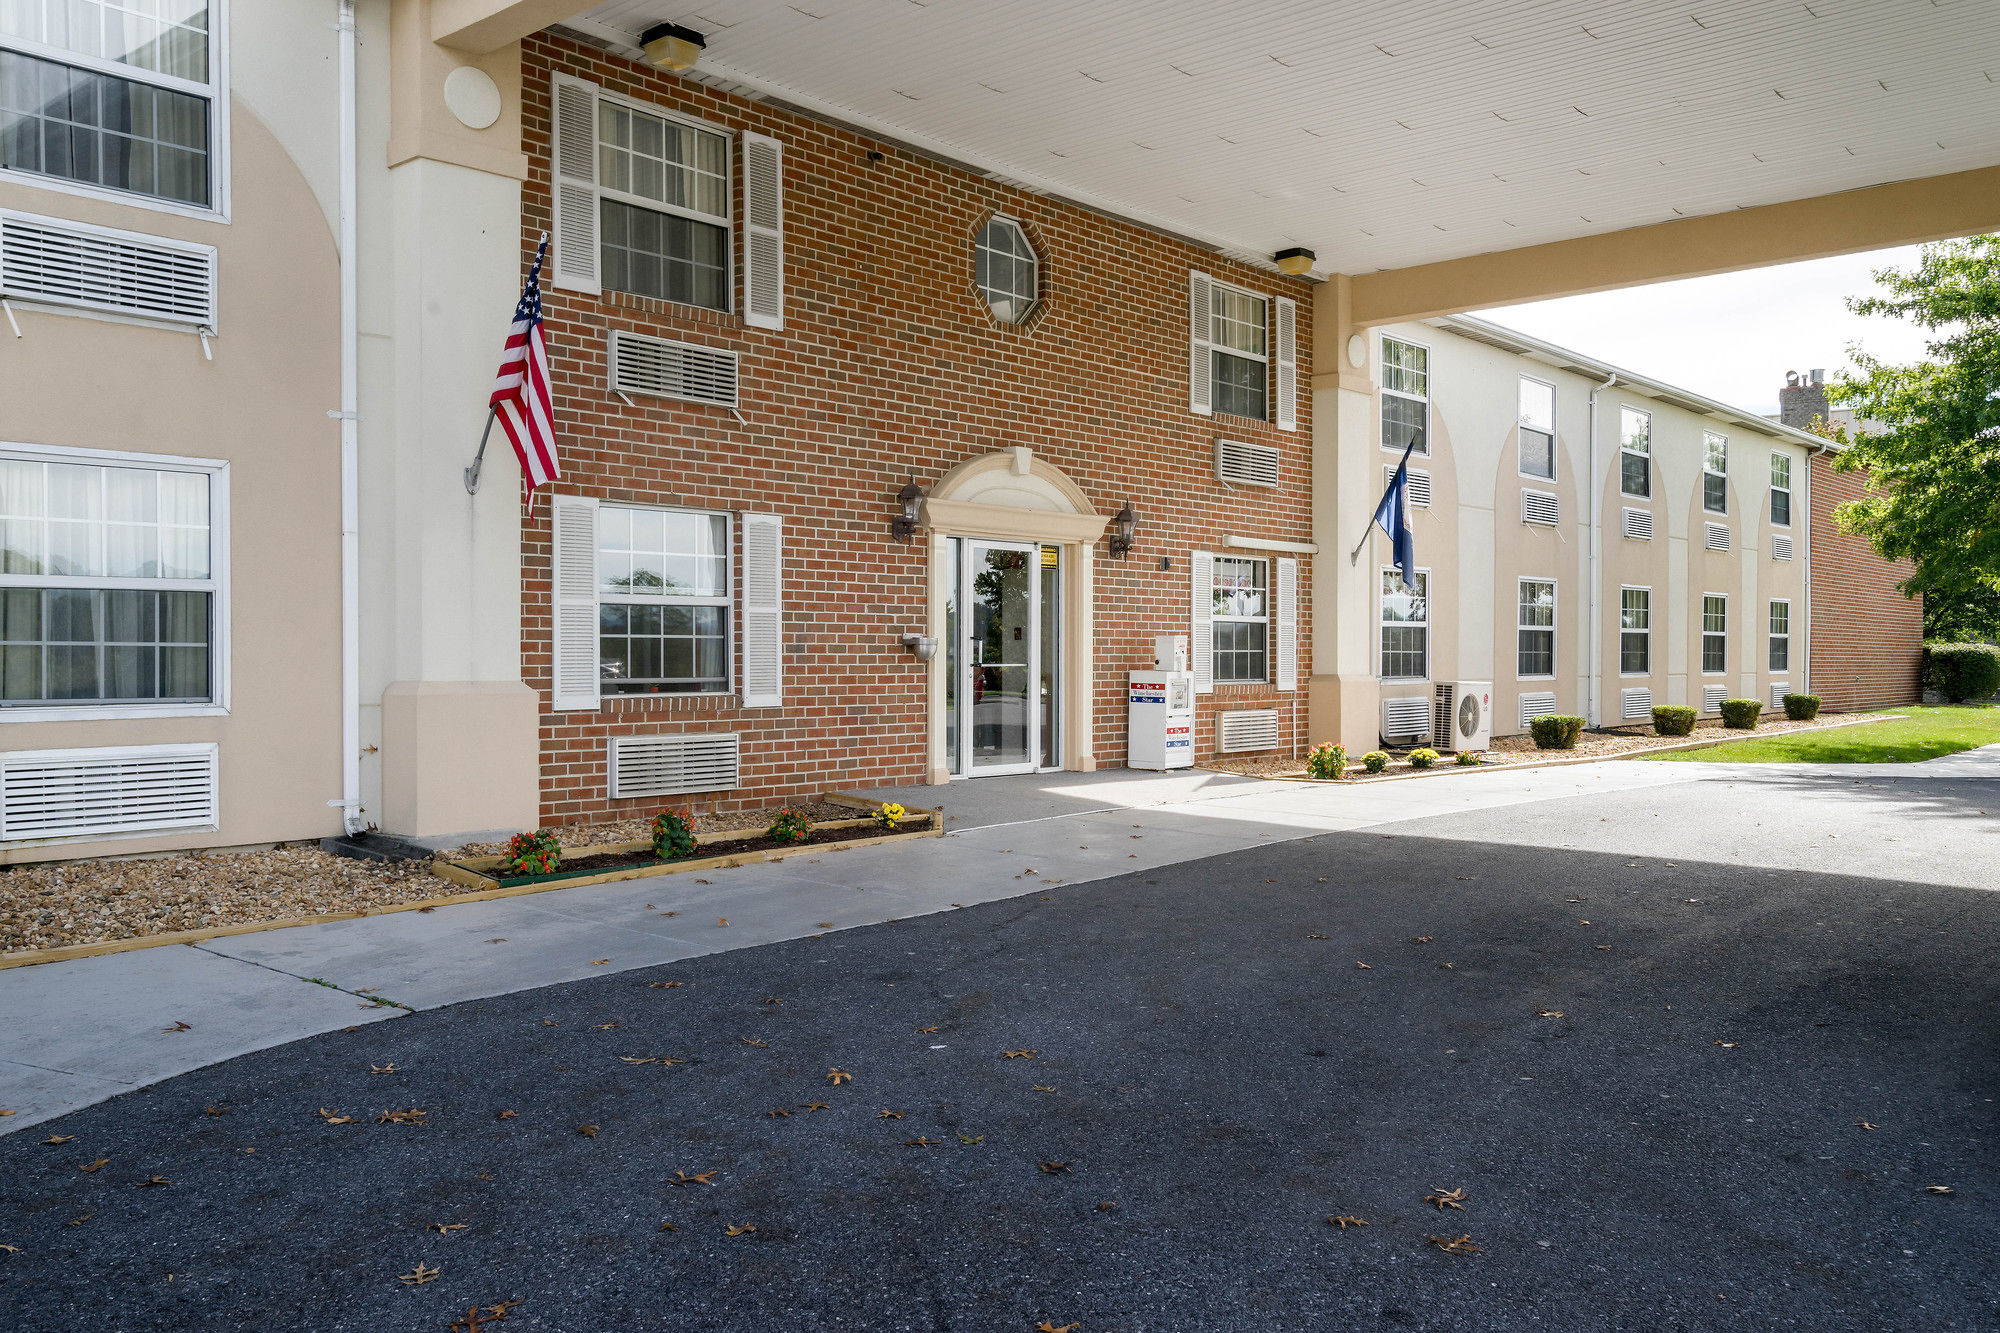 Comfort Inn Stephens City in Stephens City, VA